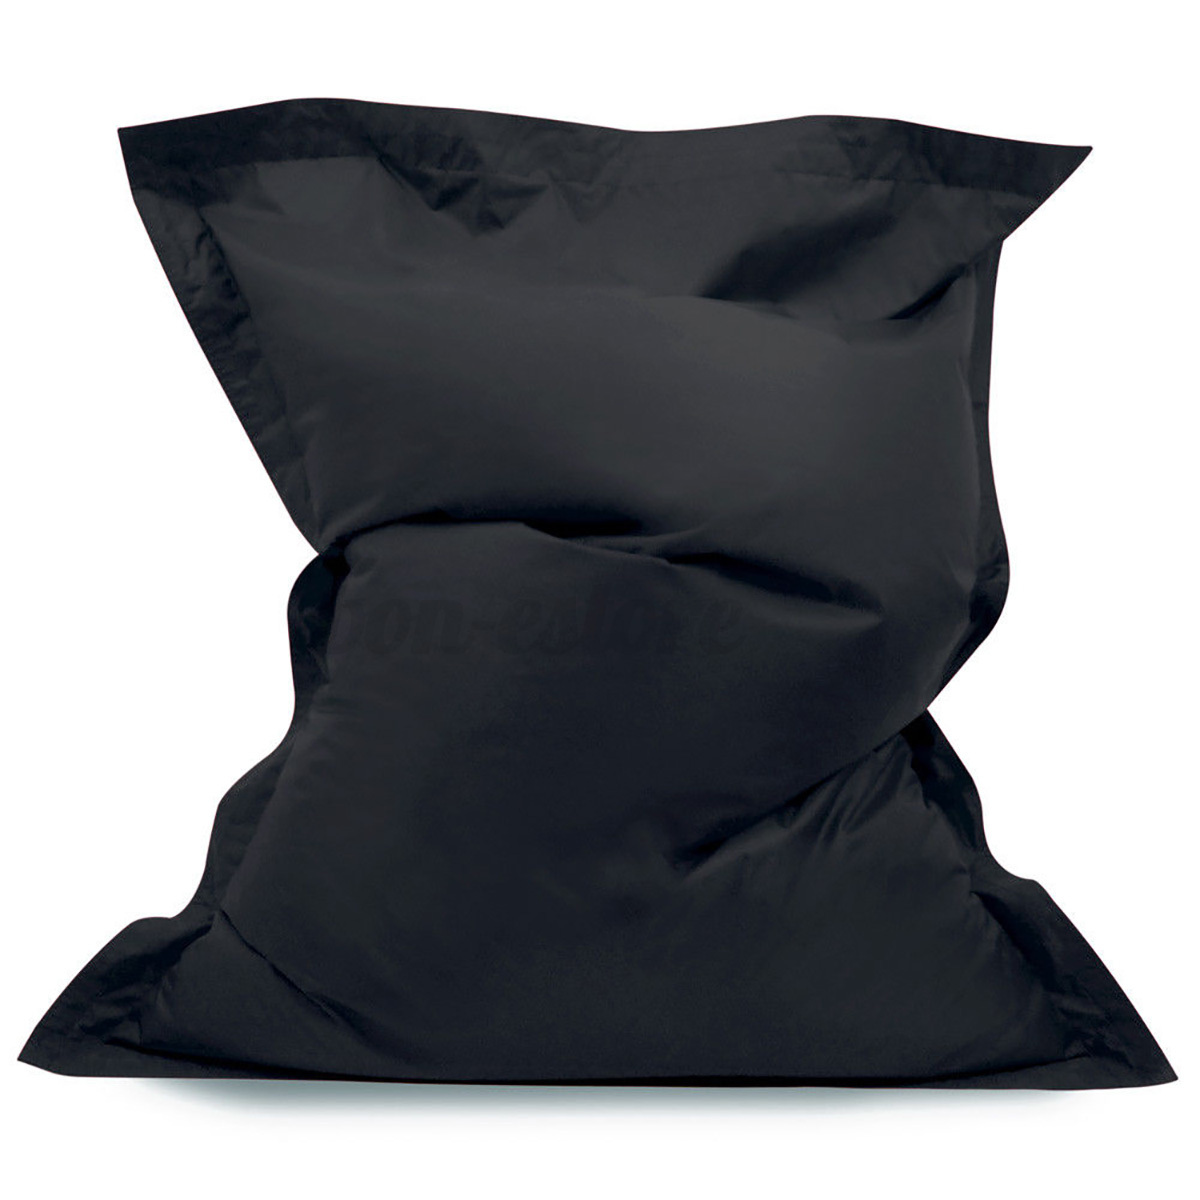 Giant Waterproof Bean Bag Chair Floor Cover Pillow